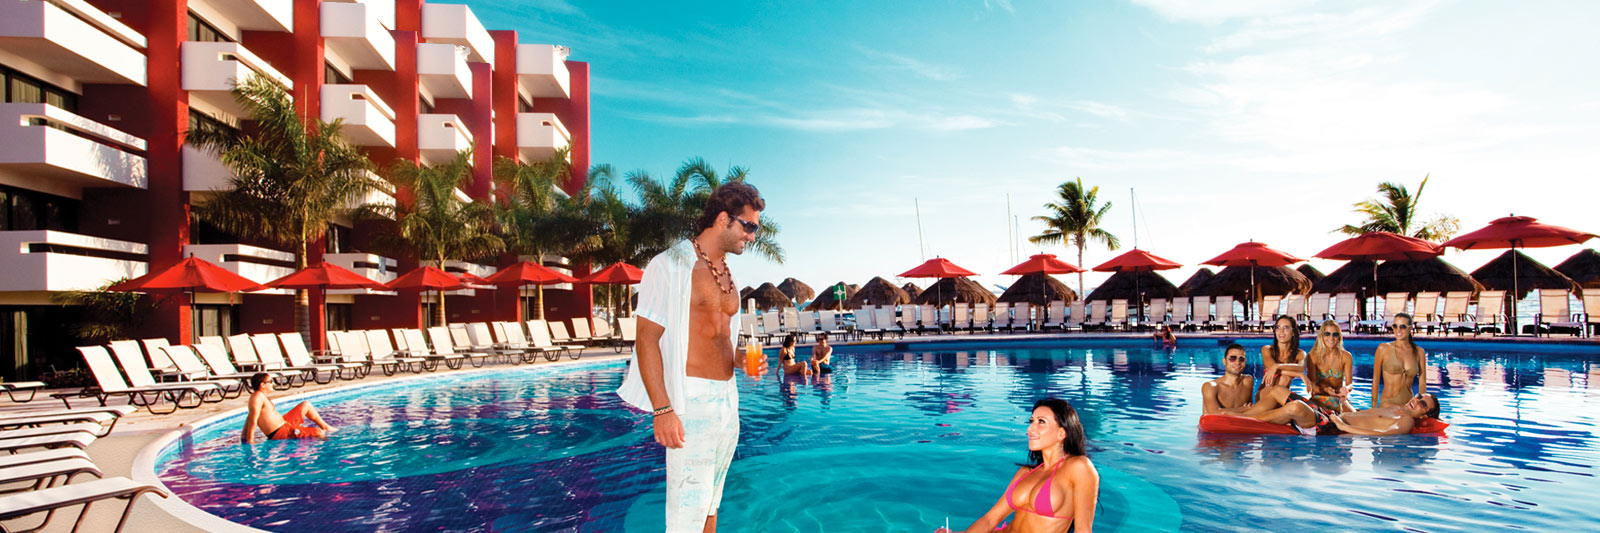 cancun resort singles vacations adults all inclusive